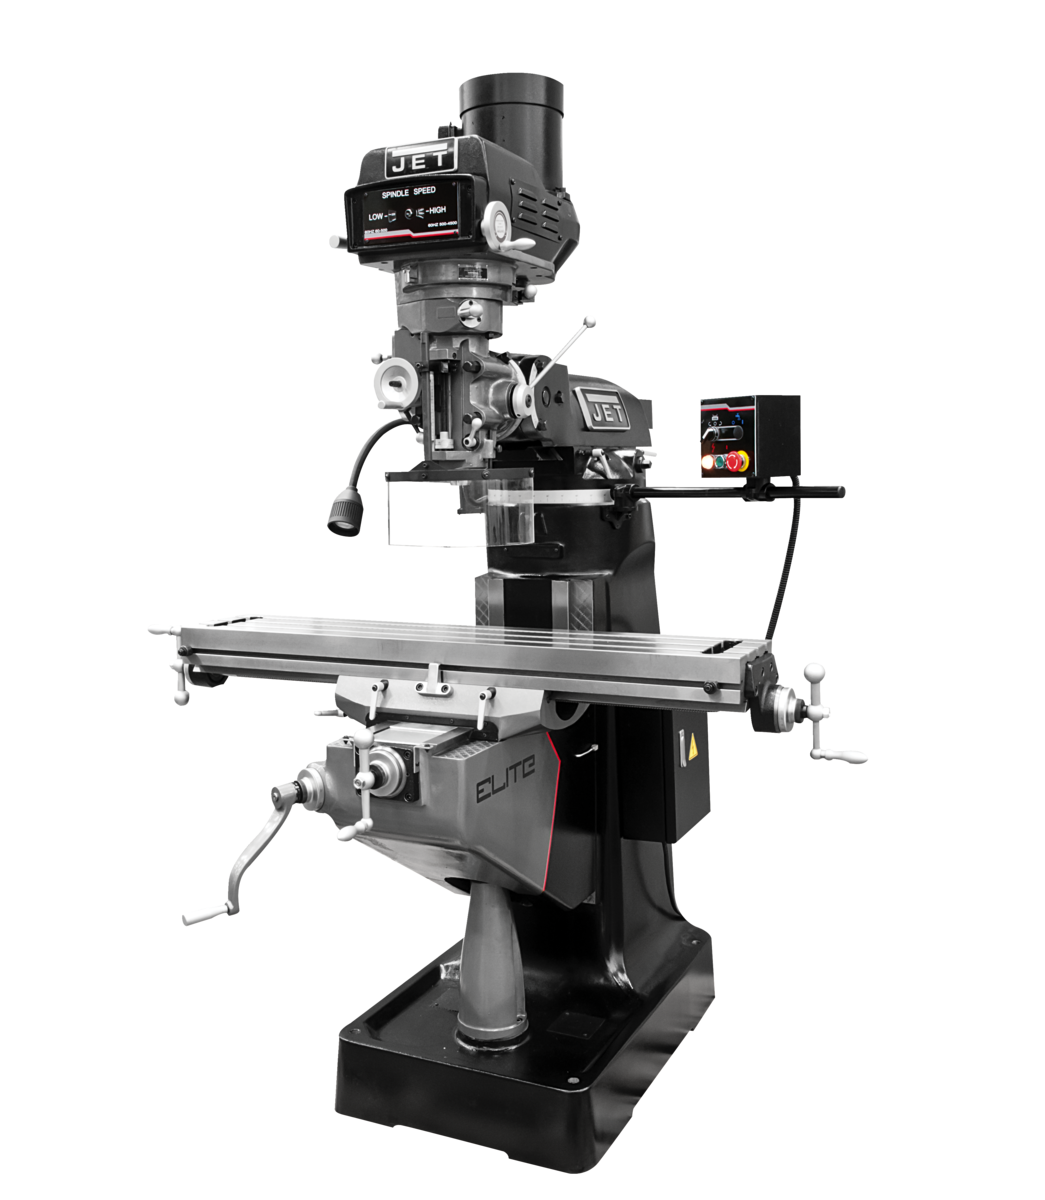 ETM-949 Mill with 2-Axis ACU-RITE 303  DRO and Servo X, Y, Z-Axis Powerfeeds